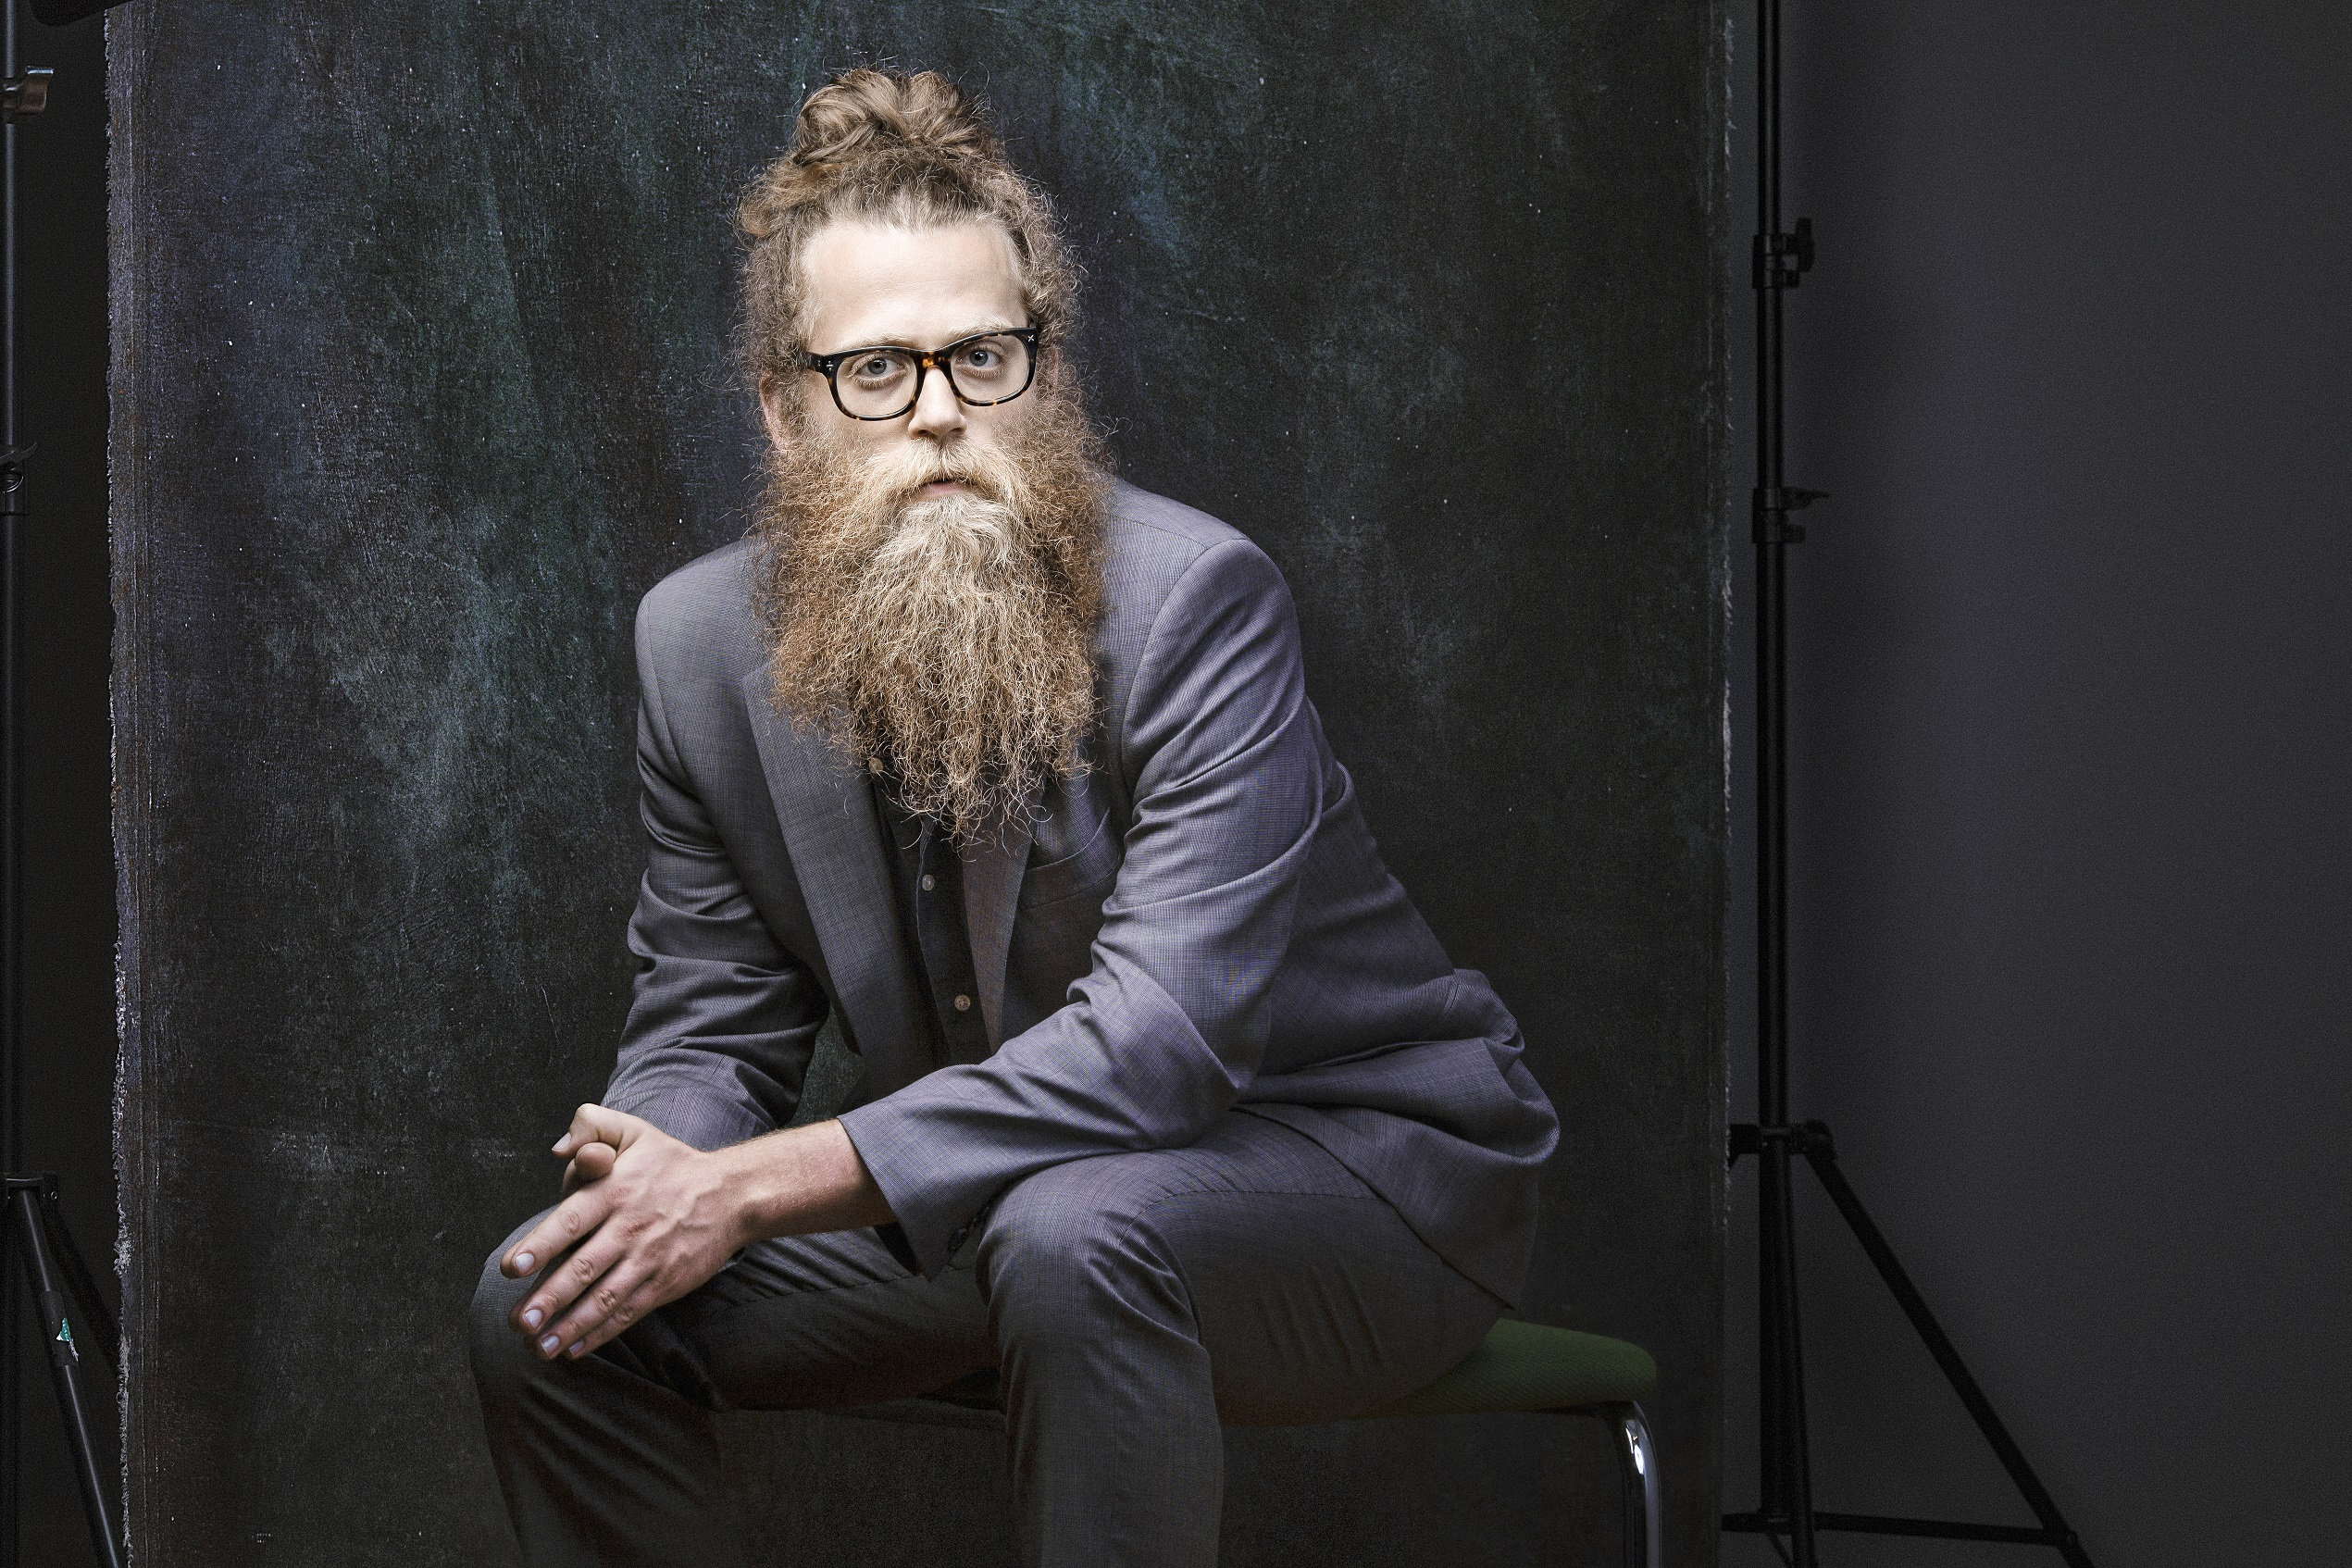 #musicmonday Down to the River by Ben Caplan